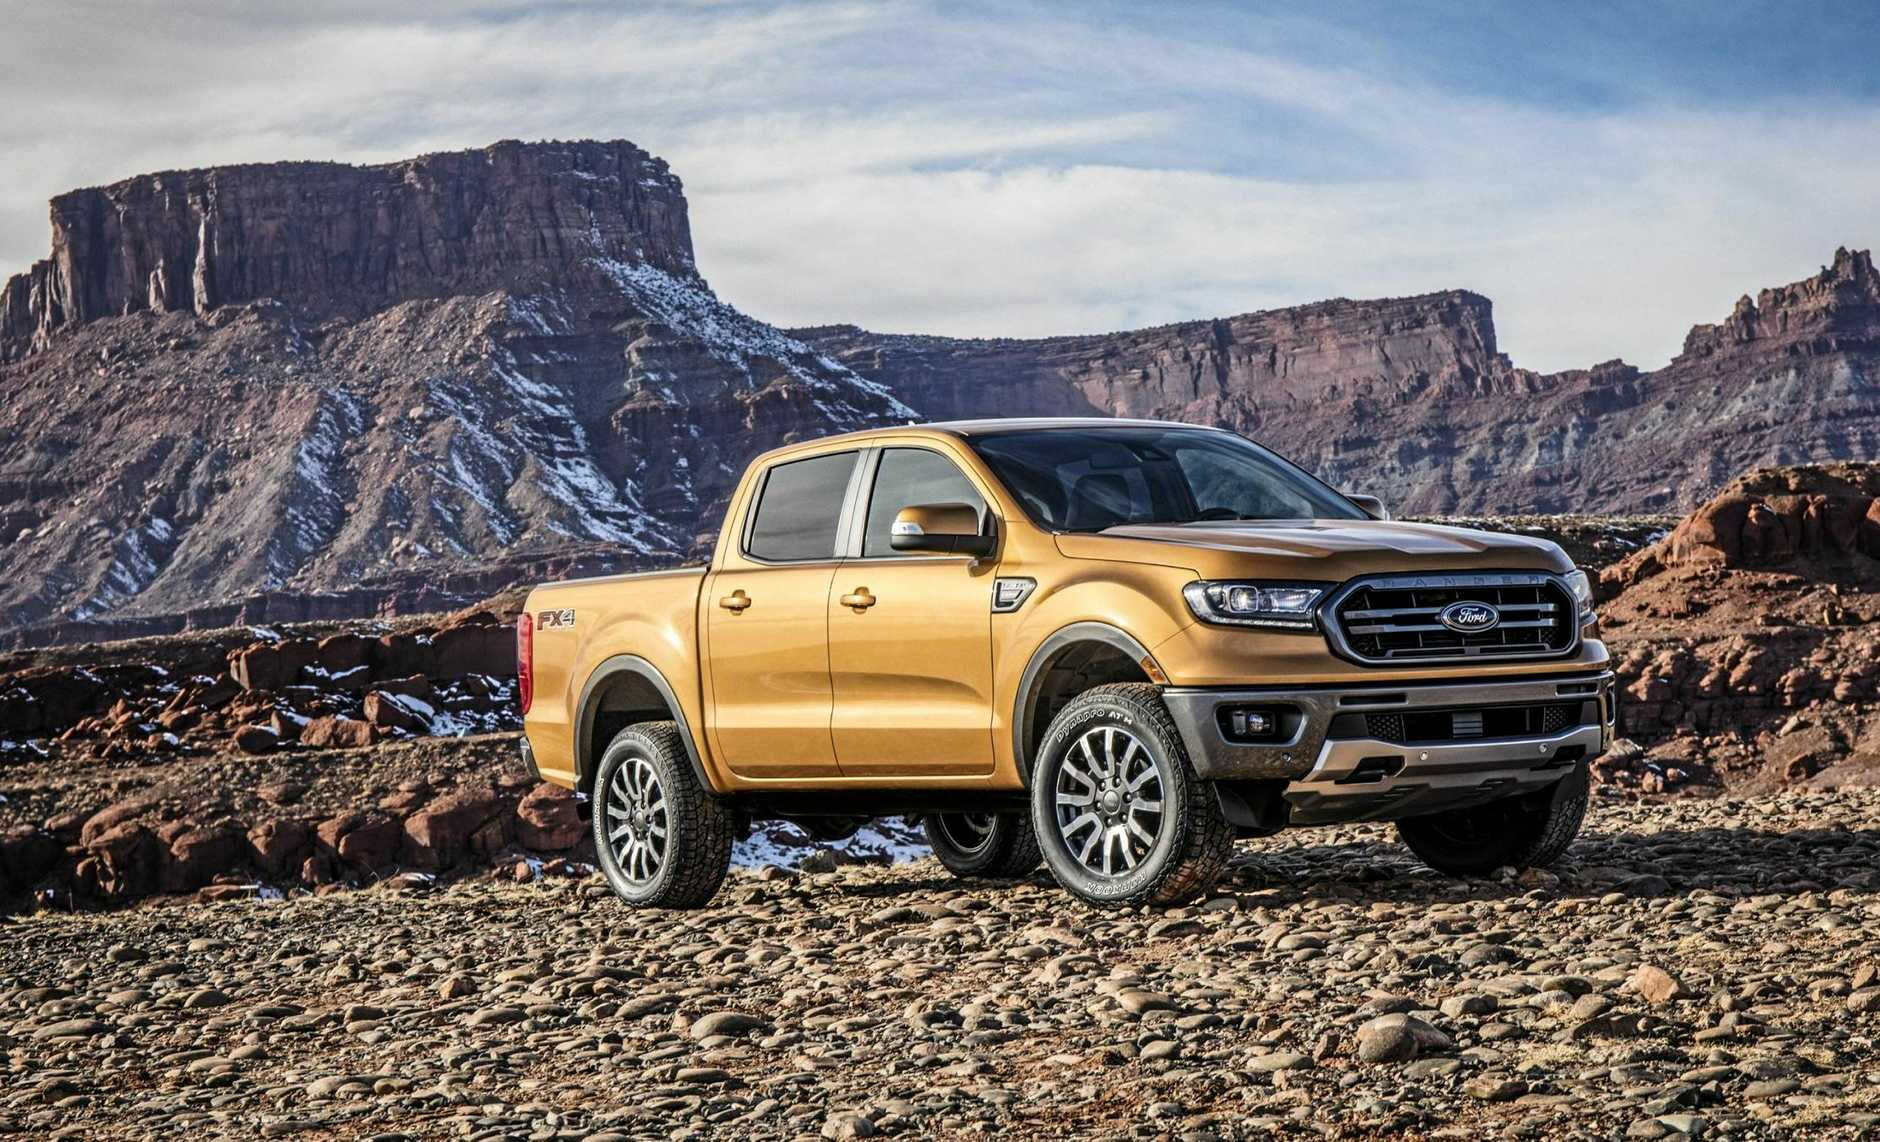 The Ford Ranger gets a new nose and new tech for 2018.